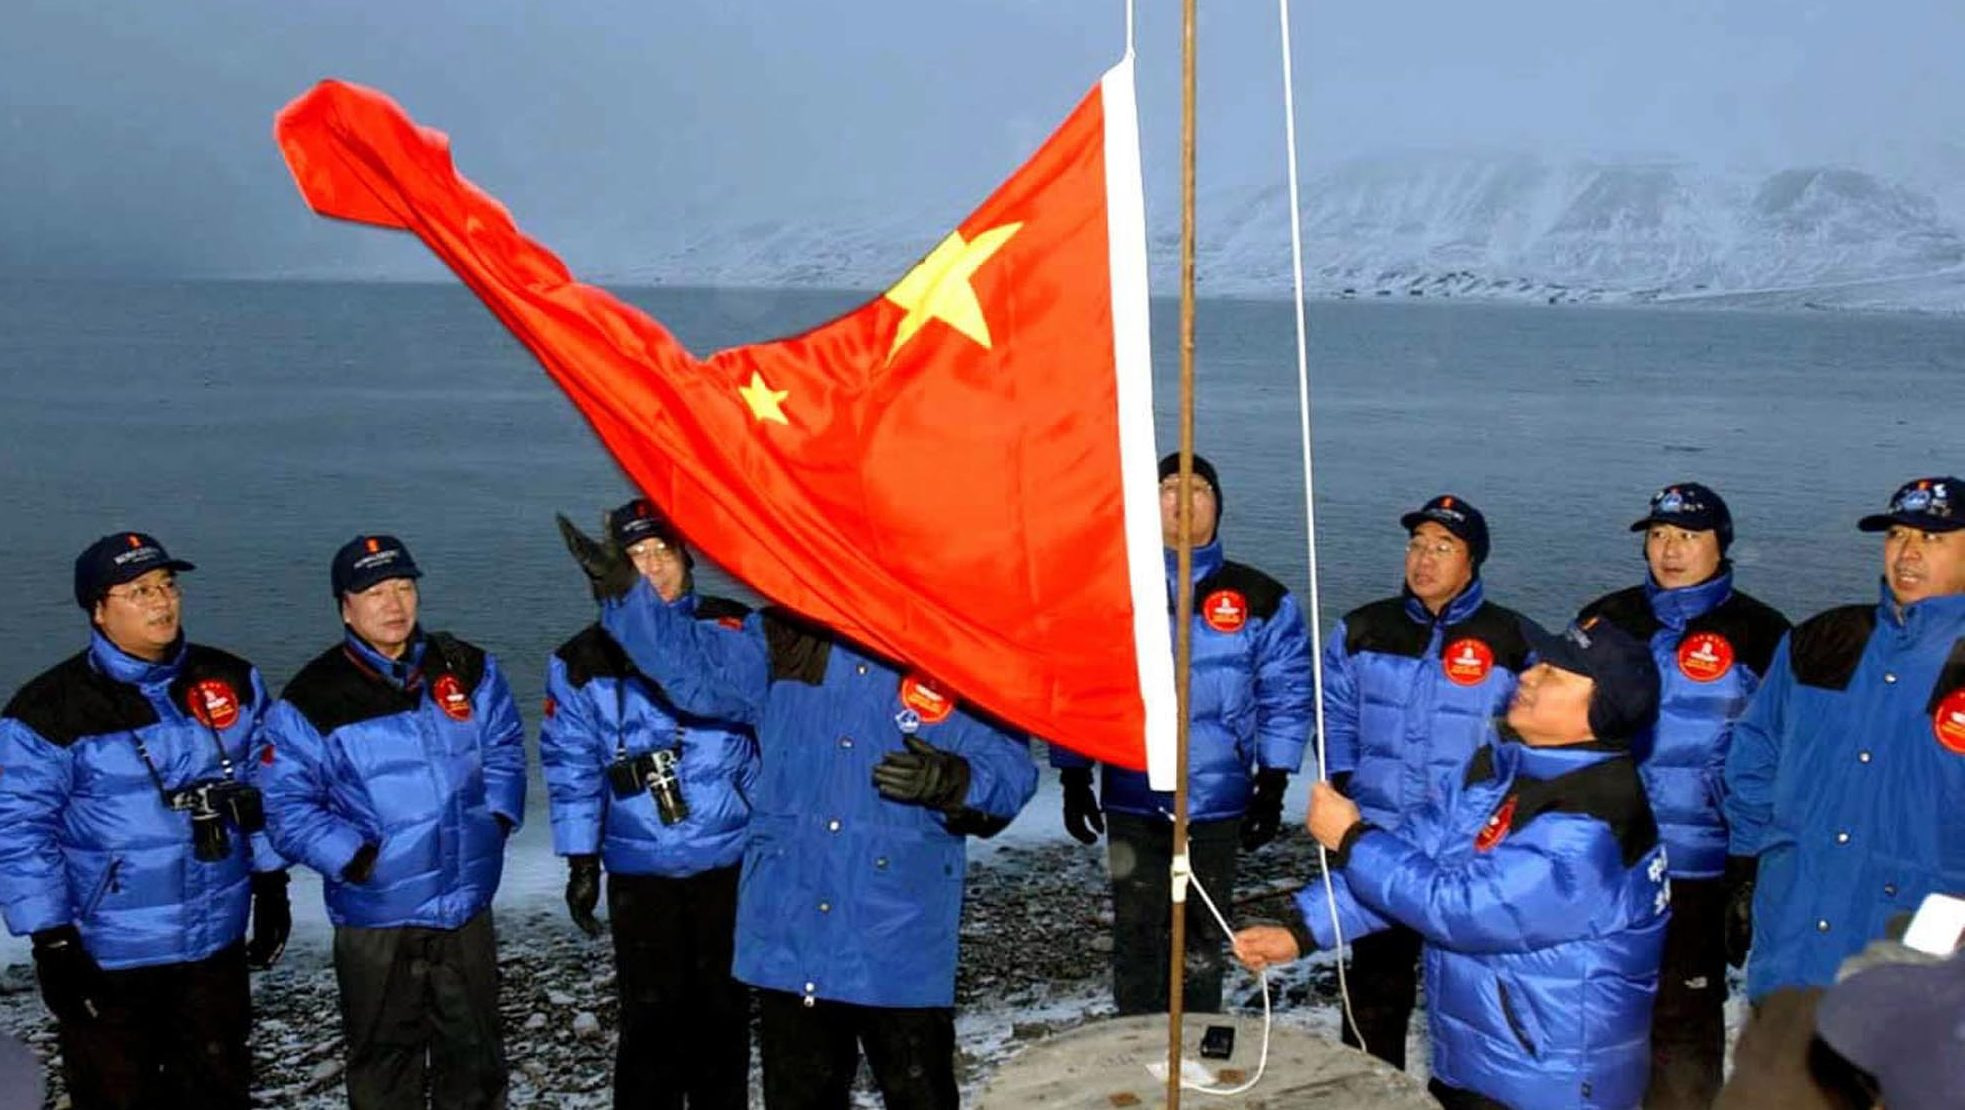 Members of the Chinese Yilite-Mulin Arctic Pole Expedition raise the Chinese national flag in Longyearbyen on Svalbard, Norway, to set the site of a Chinese research station on Wednesday, Oct. 31, 2001.  (AP Photo/Xinhua/Yuan Man)